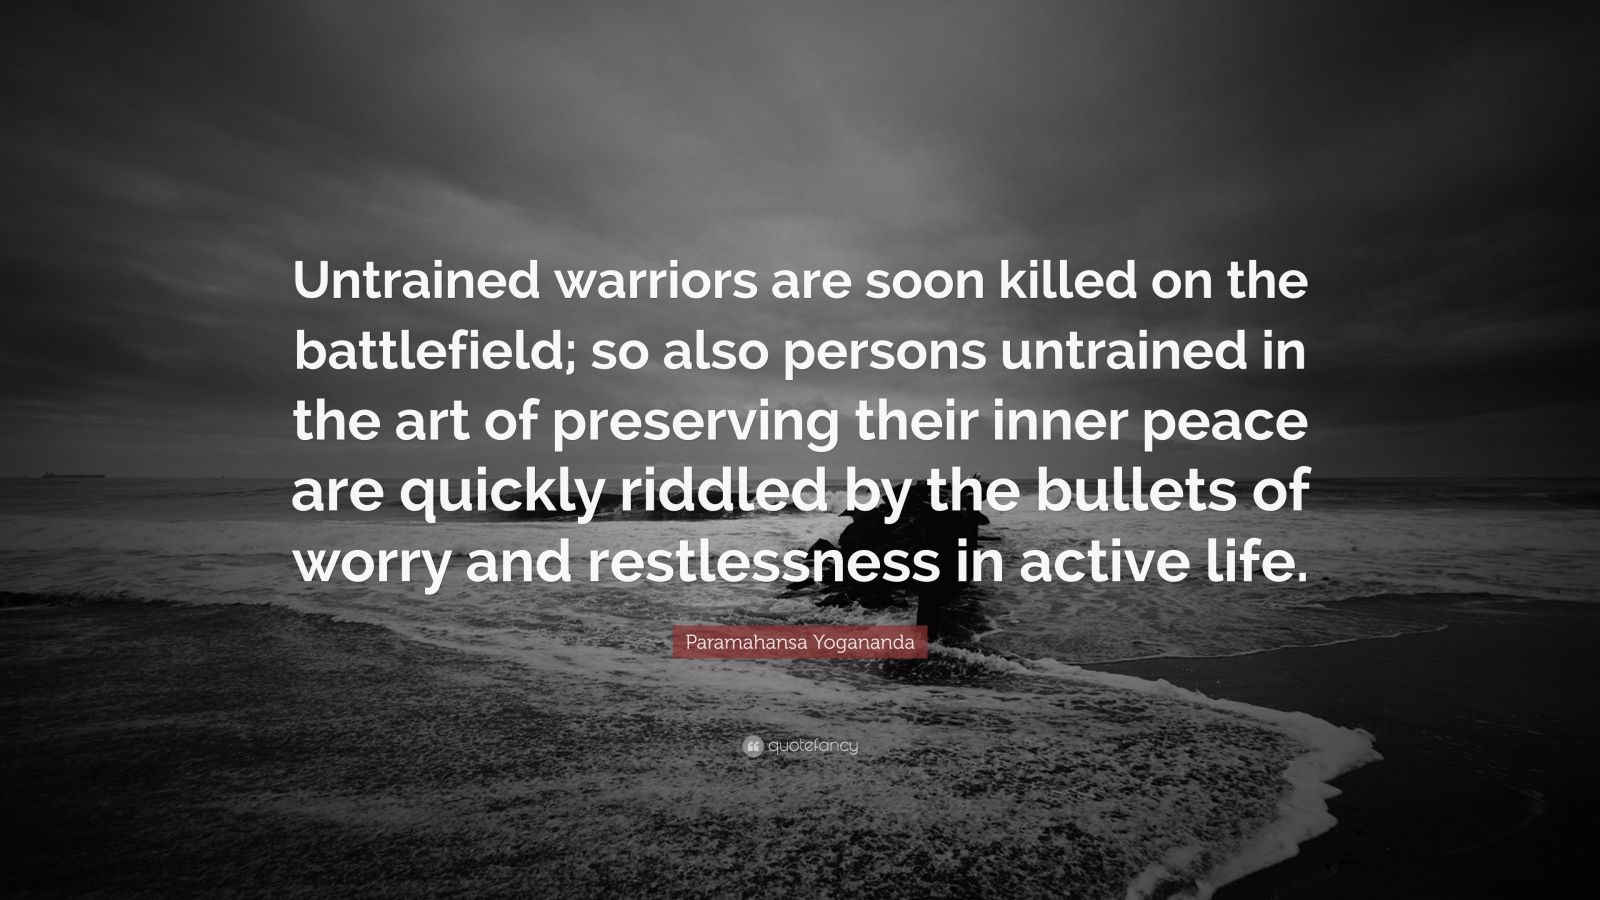 "Paramahansa Yogananda Quote: ""Untrained warriors are soon killed on the battlefield; so also persons untrained in the art of preserving their inner peace are quickly riddled by the bullets of worry and restlessness in active life."""